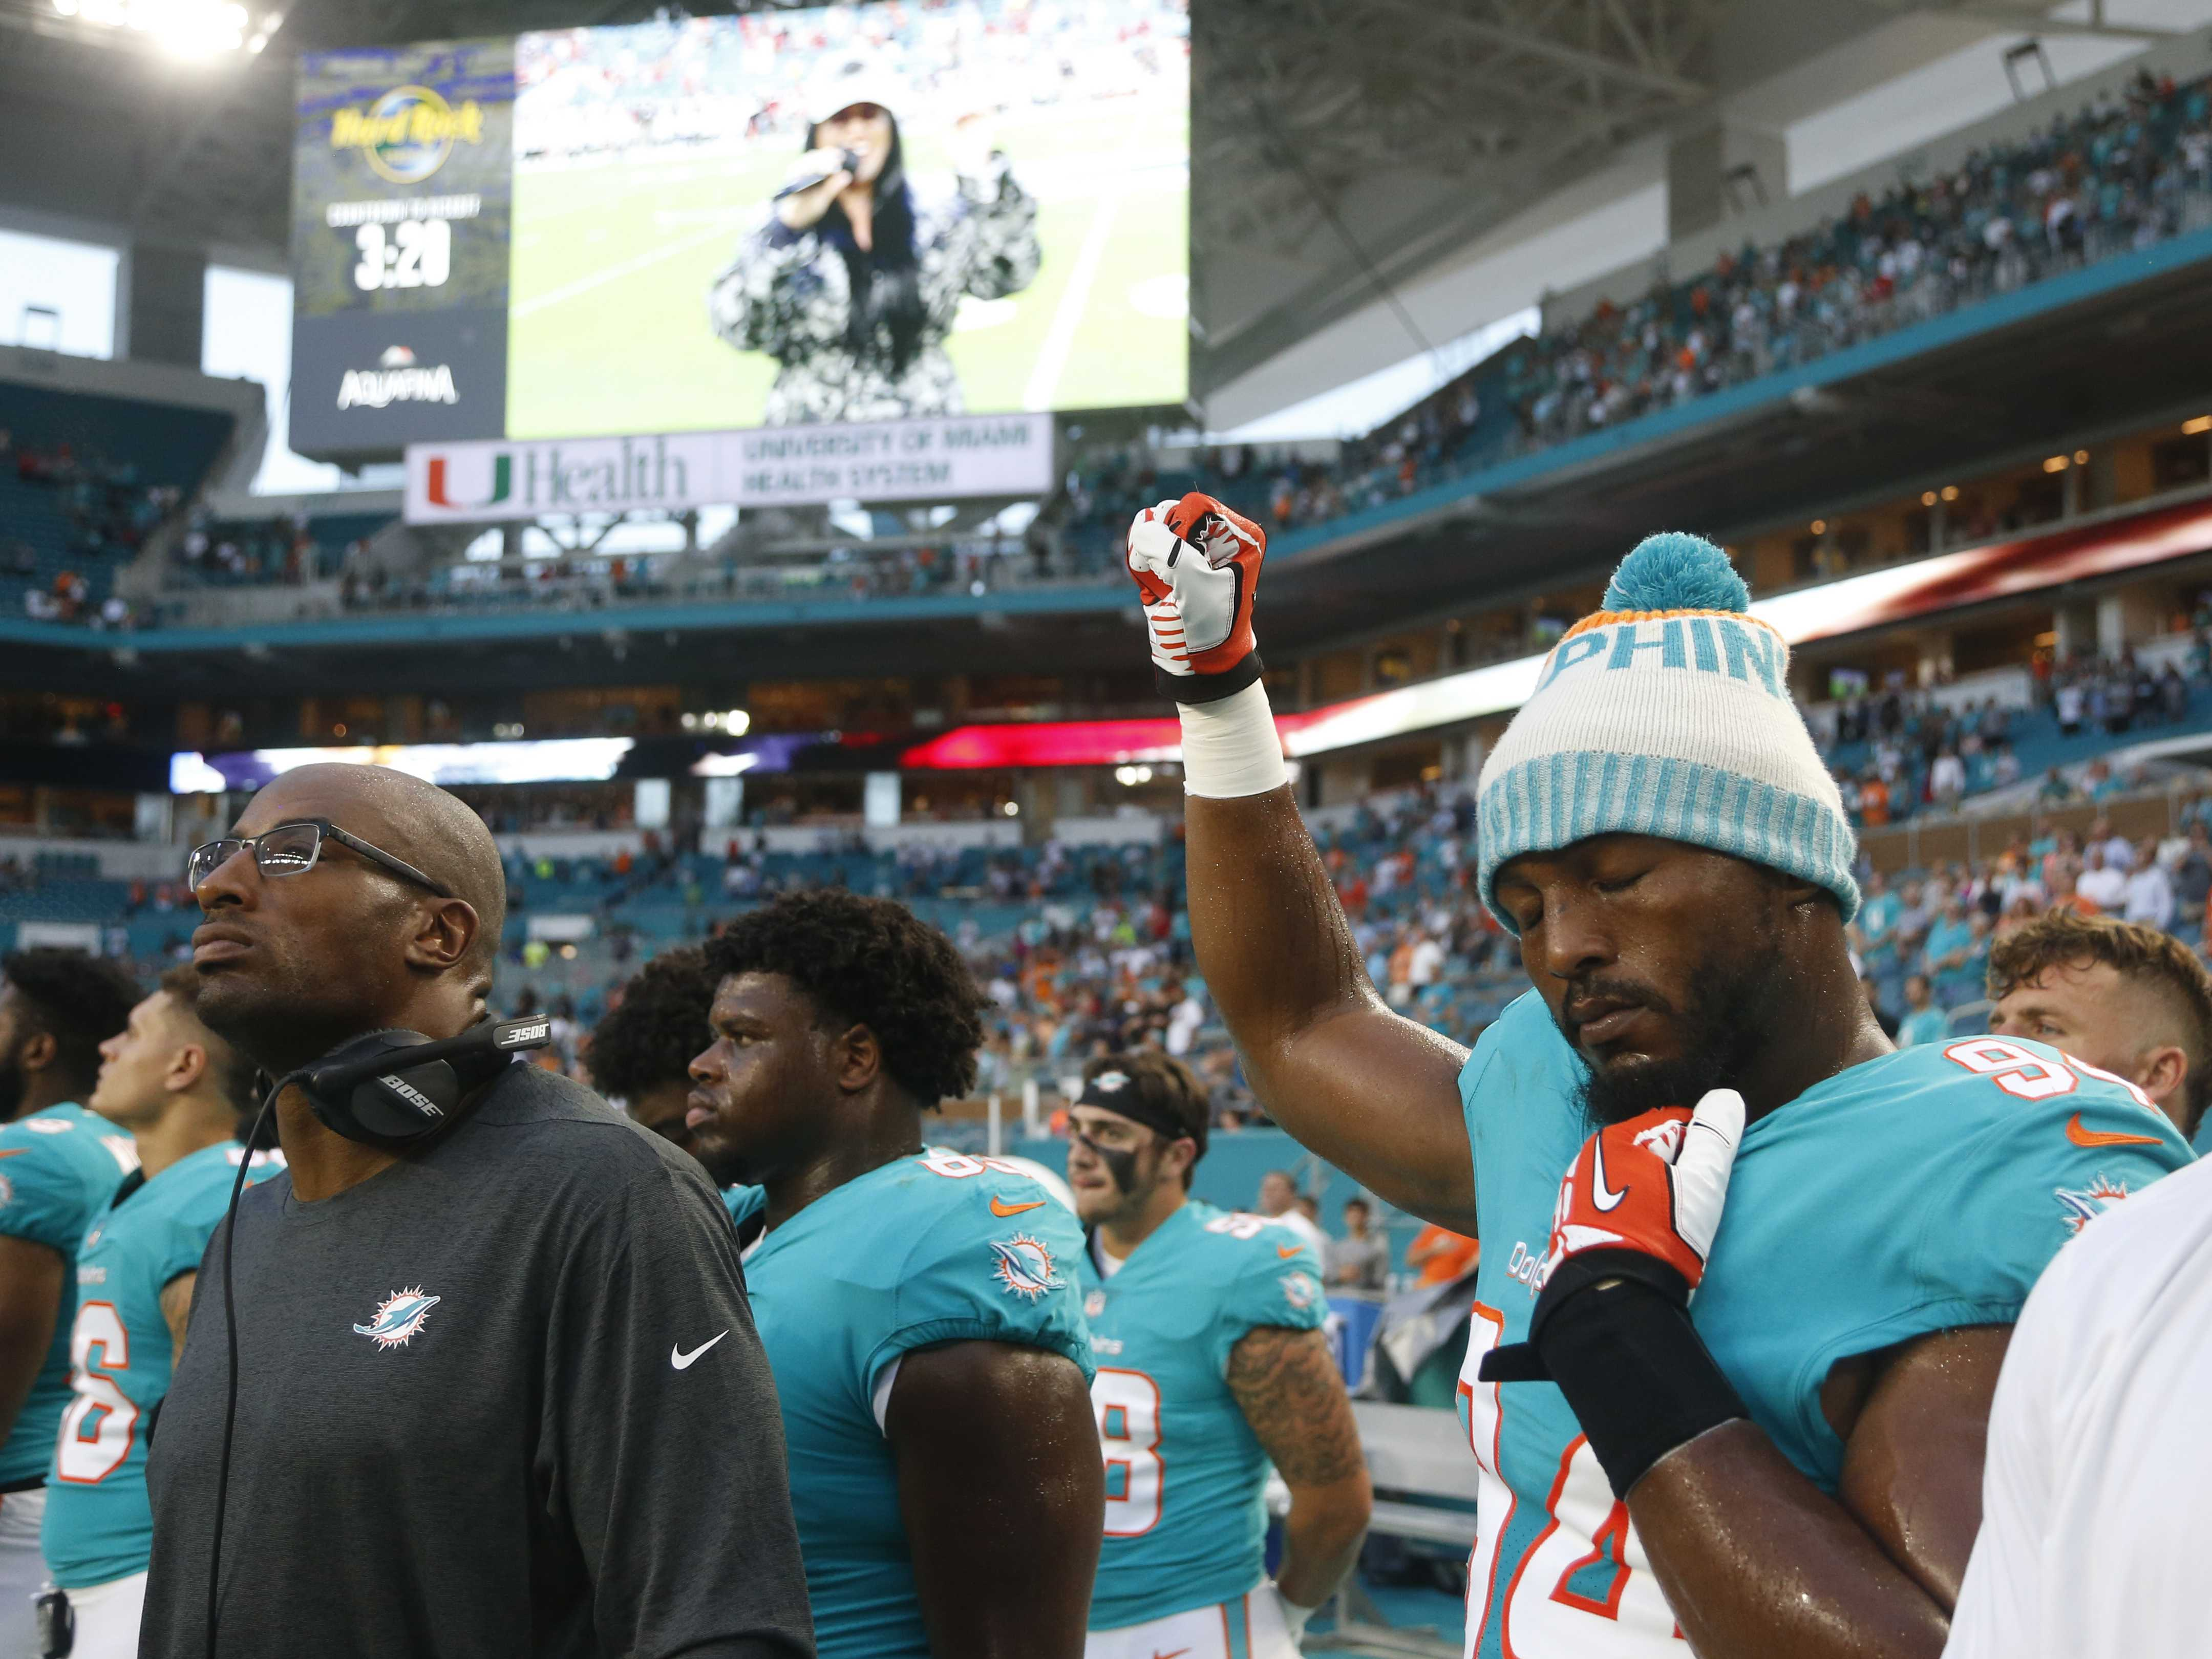 NFL Players Emphasize Reasons for Anthem Demonstrations